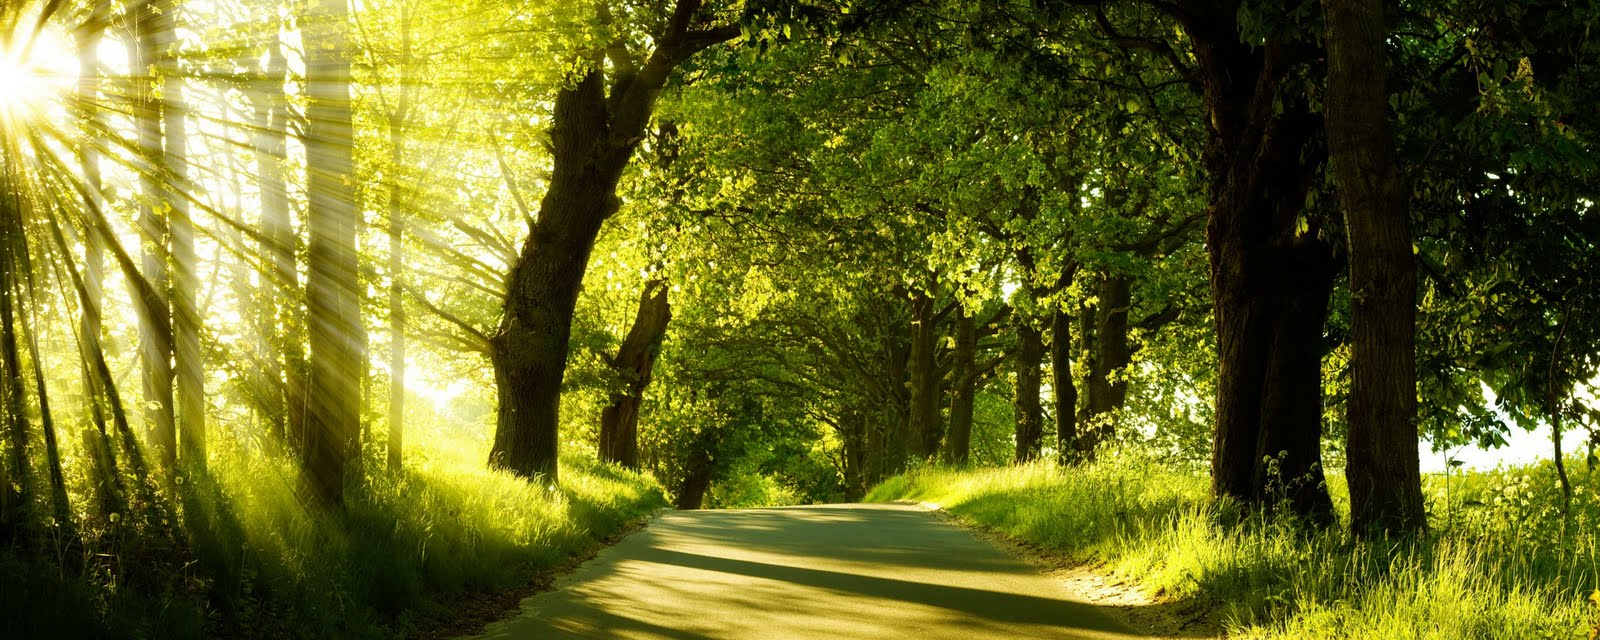 My Best Wallpapers: beautiful pictures of green nature, natural